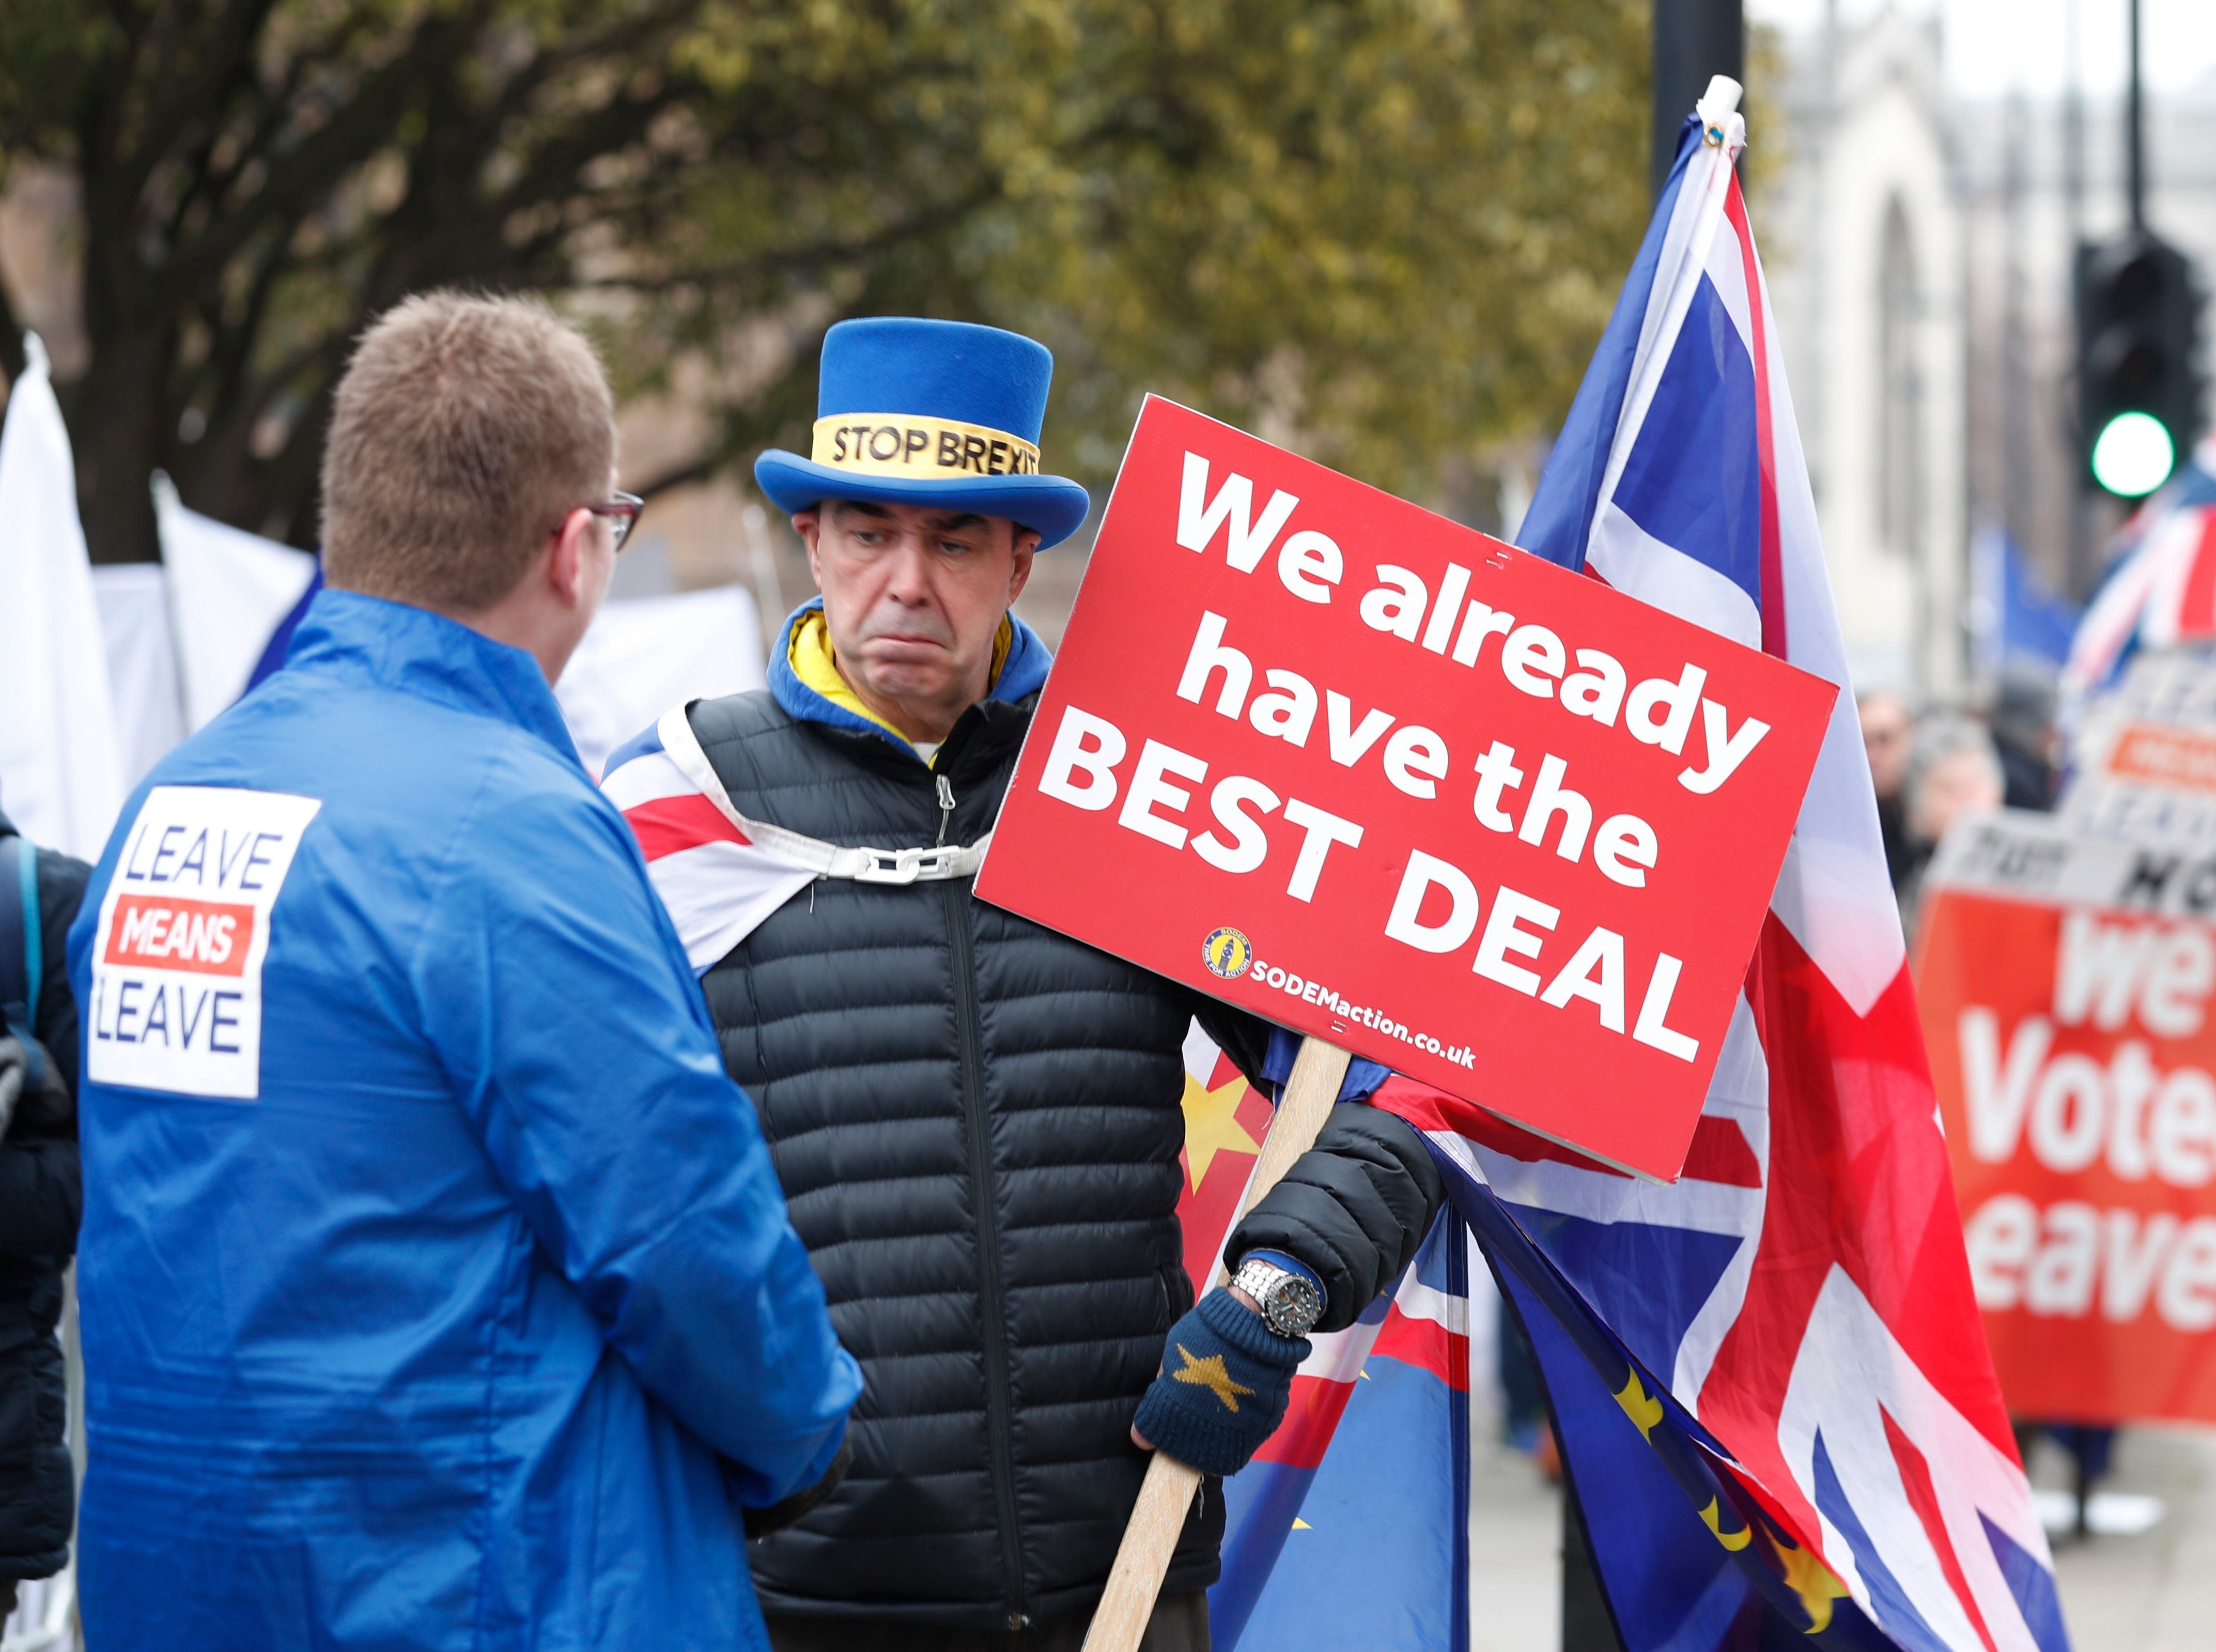 Pro-Brexit, left, and anti-Brexit, right, protesters debate their views outside parliament in London, Thursday Jan. 10, 2019. Prime Minister Theresa May's proposed Brexit deal seems widely disliked by both pro-European and pro-Brexit politicians, threatening the exit agreement and future relations with EU.